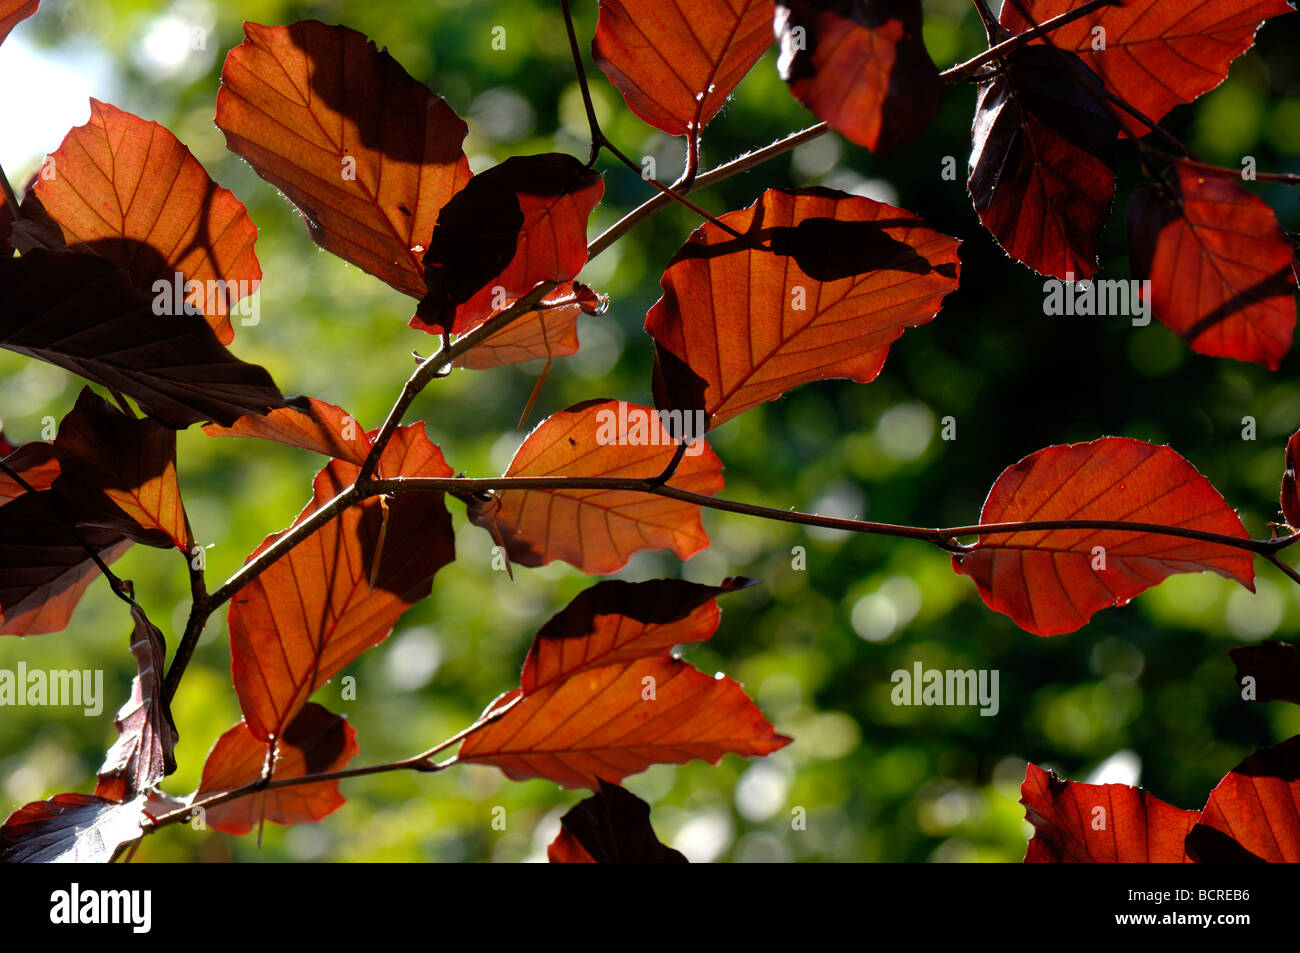 Young backlit leaves of a copper beech tree - Stock Image